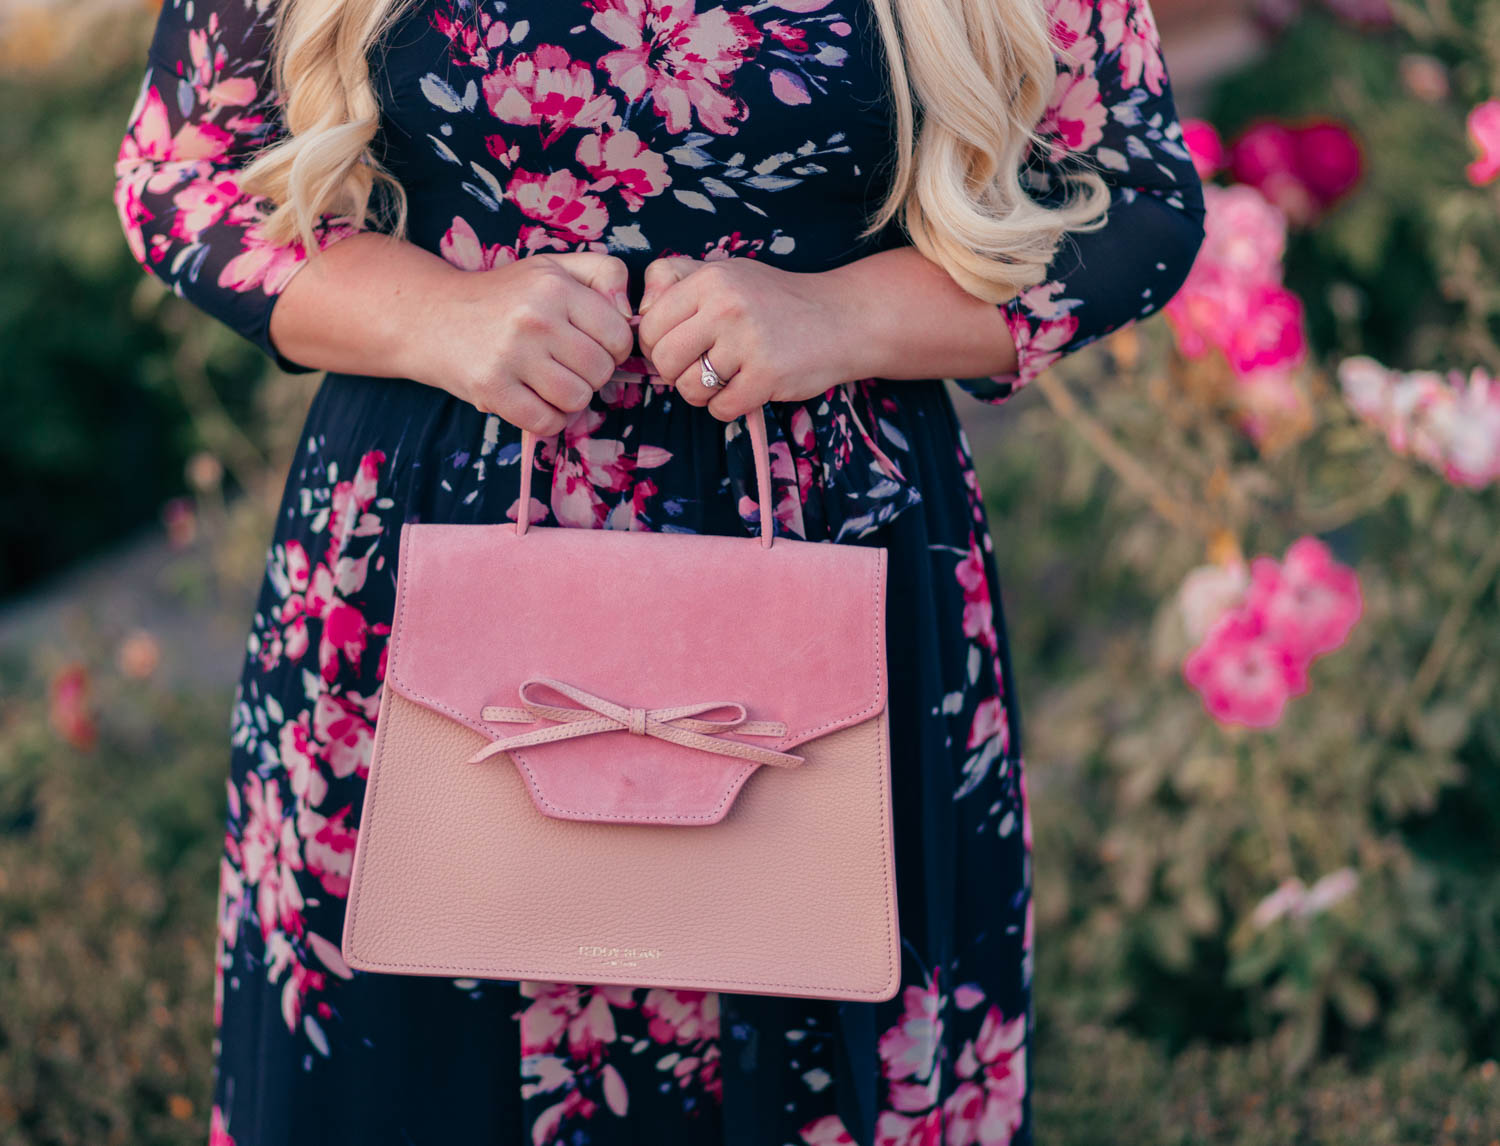 Fashion Blogger Elizabeth Hugen of Lizzie in Lace shares her girly handbag collection including this Teddy Blake handbag